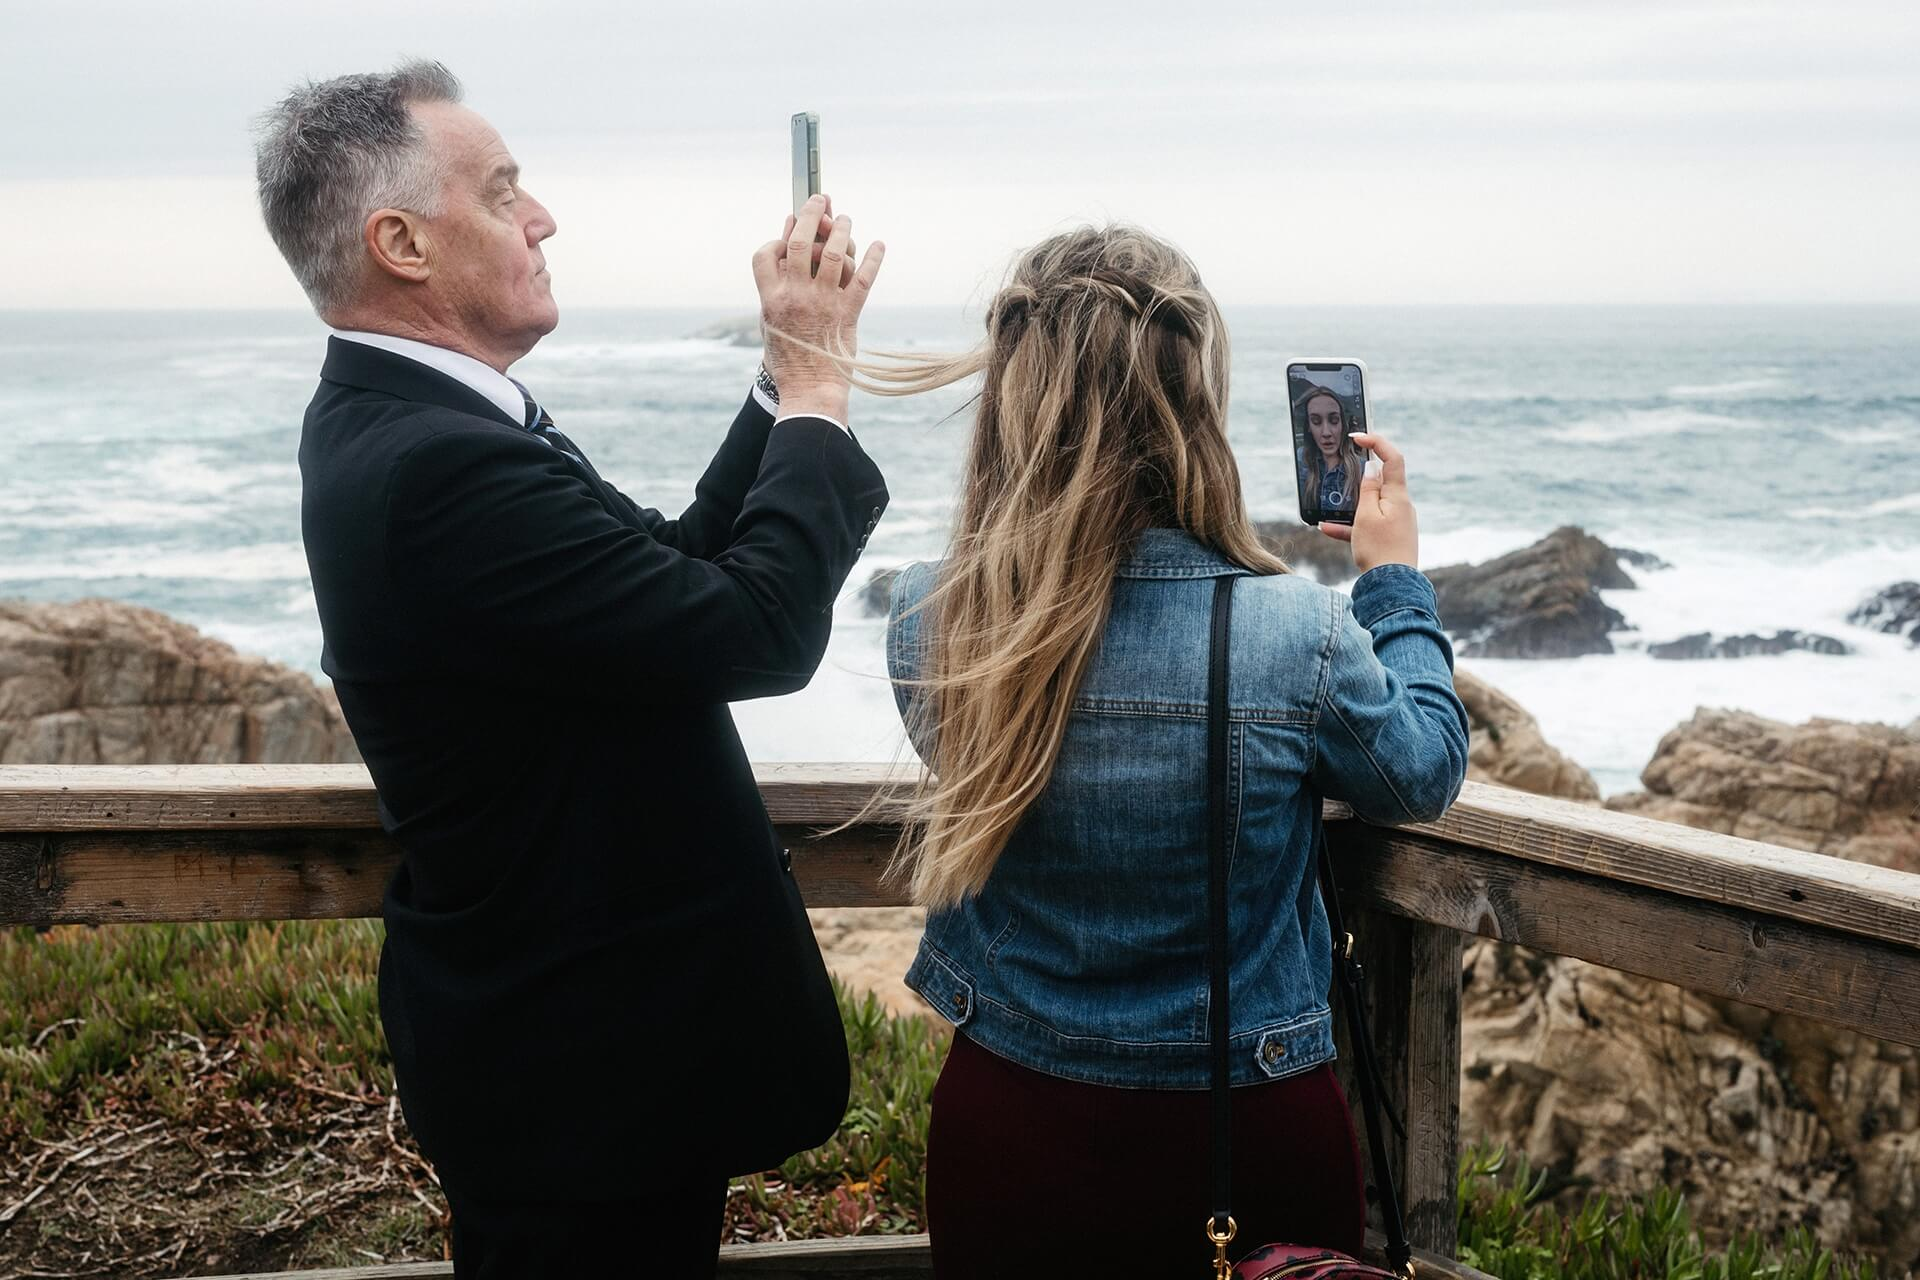 Big Sur California intimate wedding photography   The grooms father and sister take slightly different photos